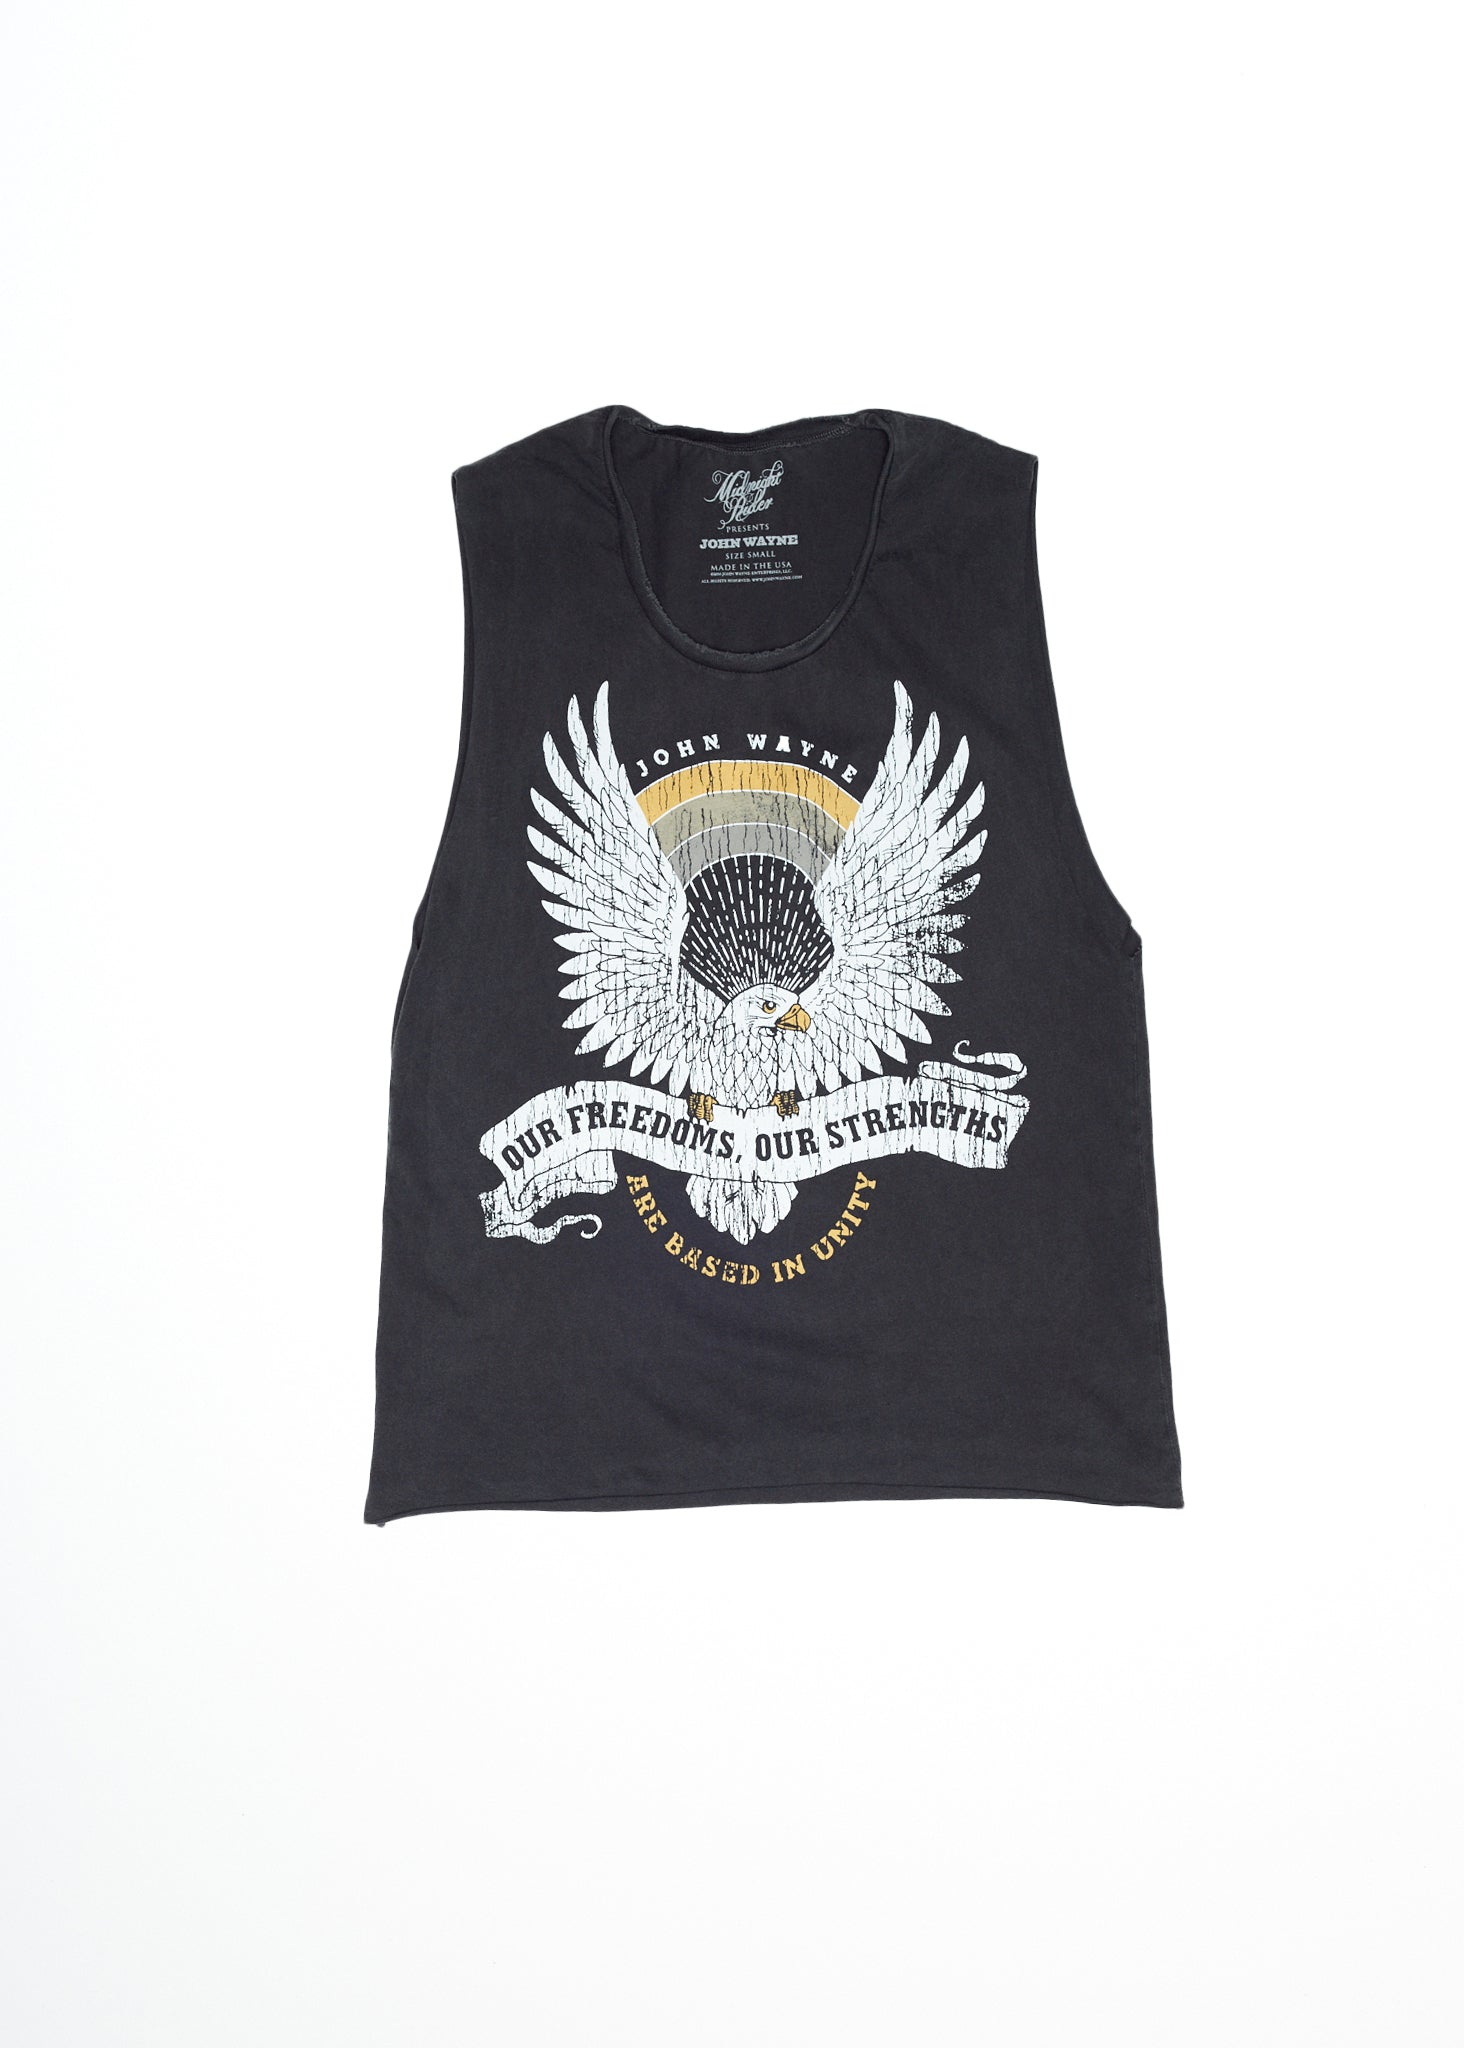 Our Freedoms John Wayne Muscle Tee - Vintage Black